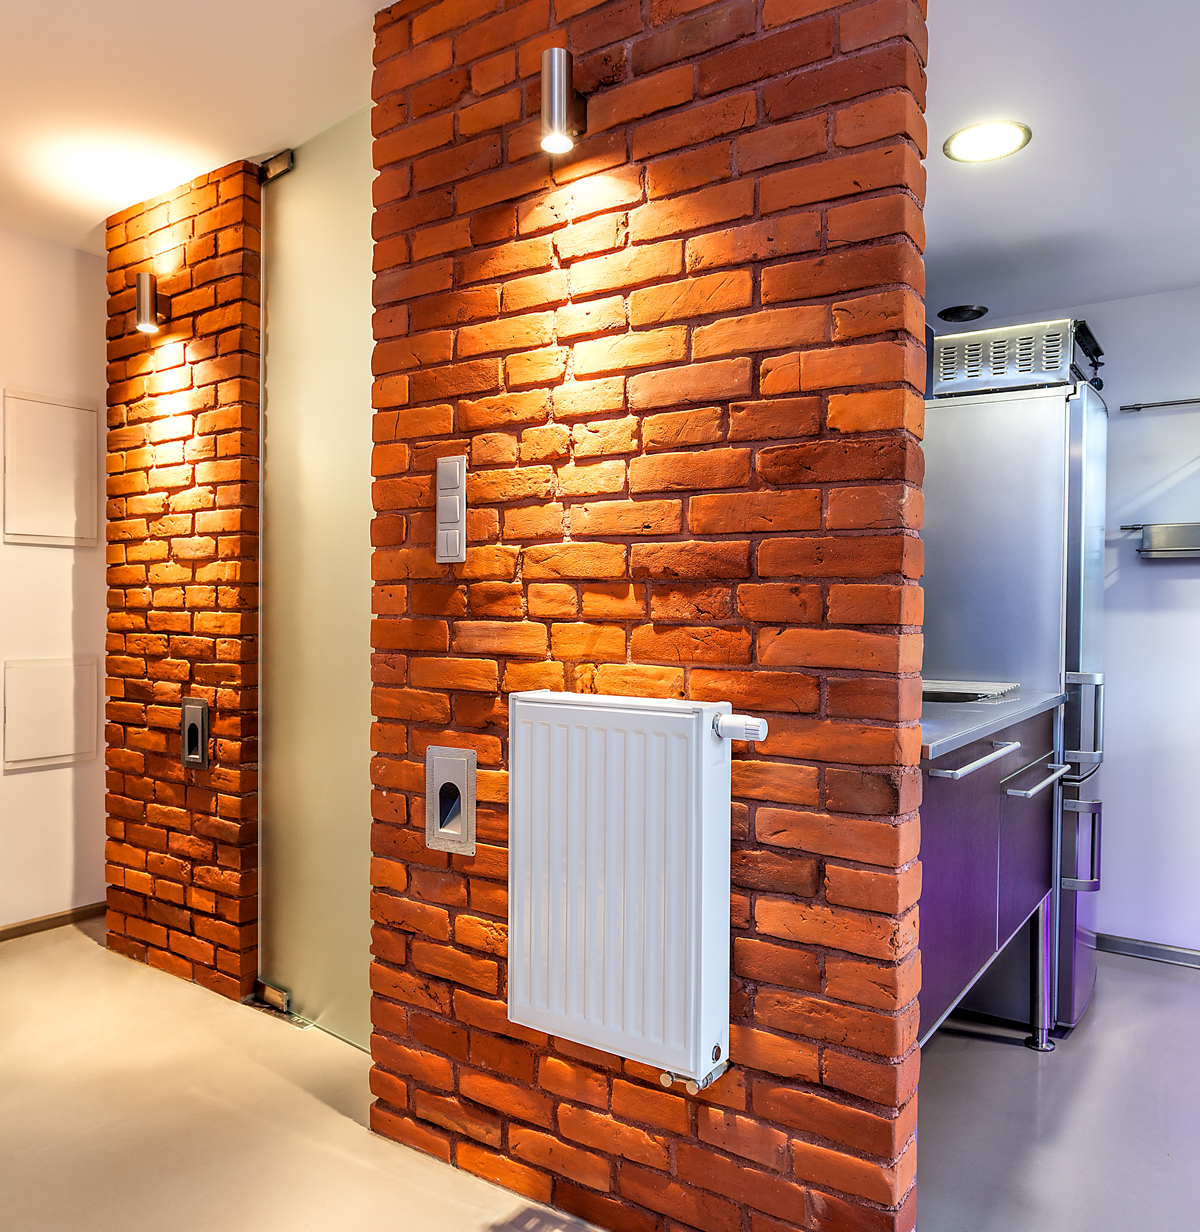 wall washing mistakes